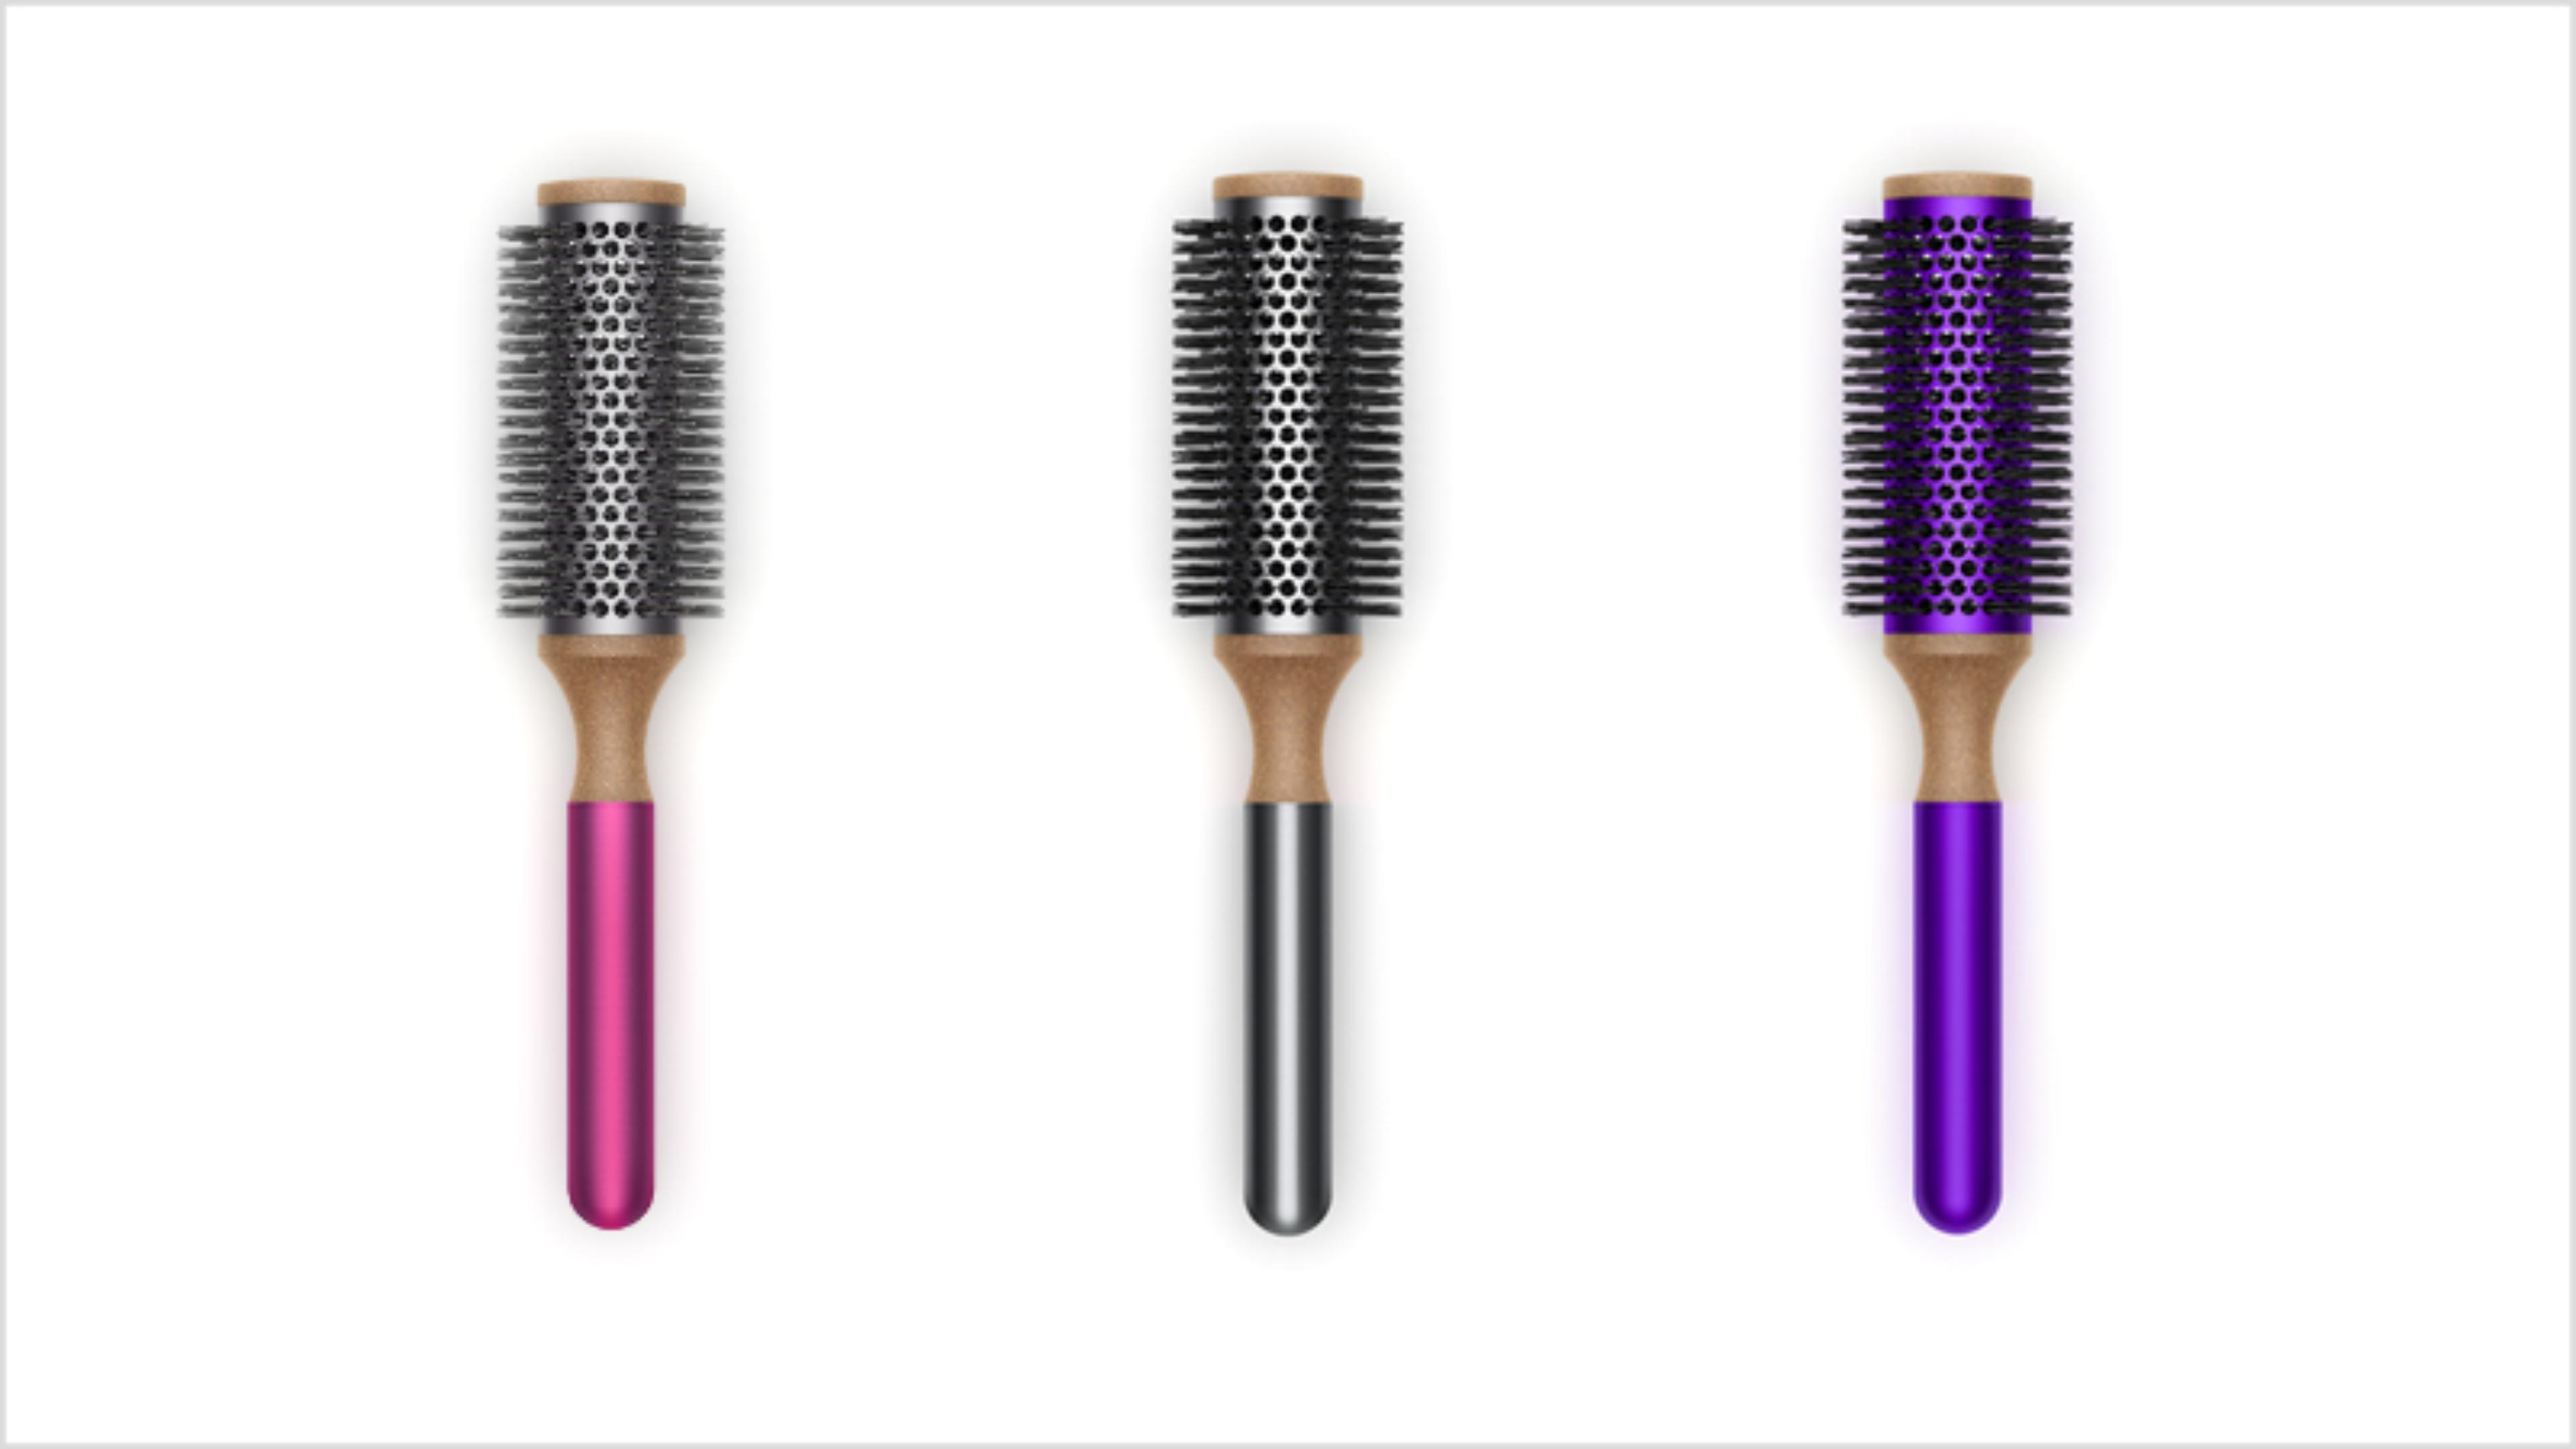 Dyson-vented barrel 35mm brush in Fuchsia, Purple and Nickel